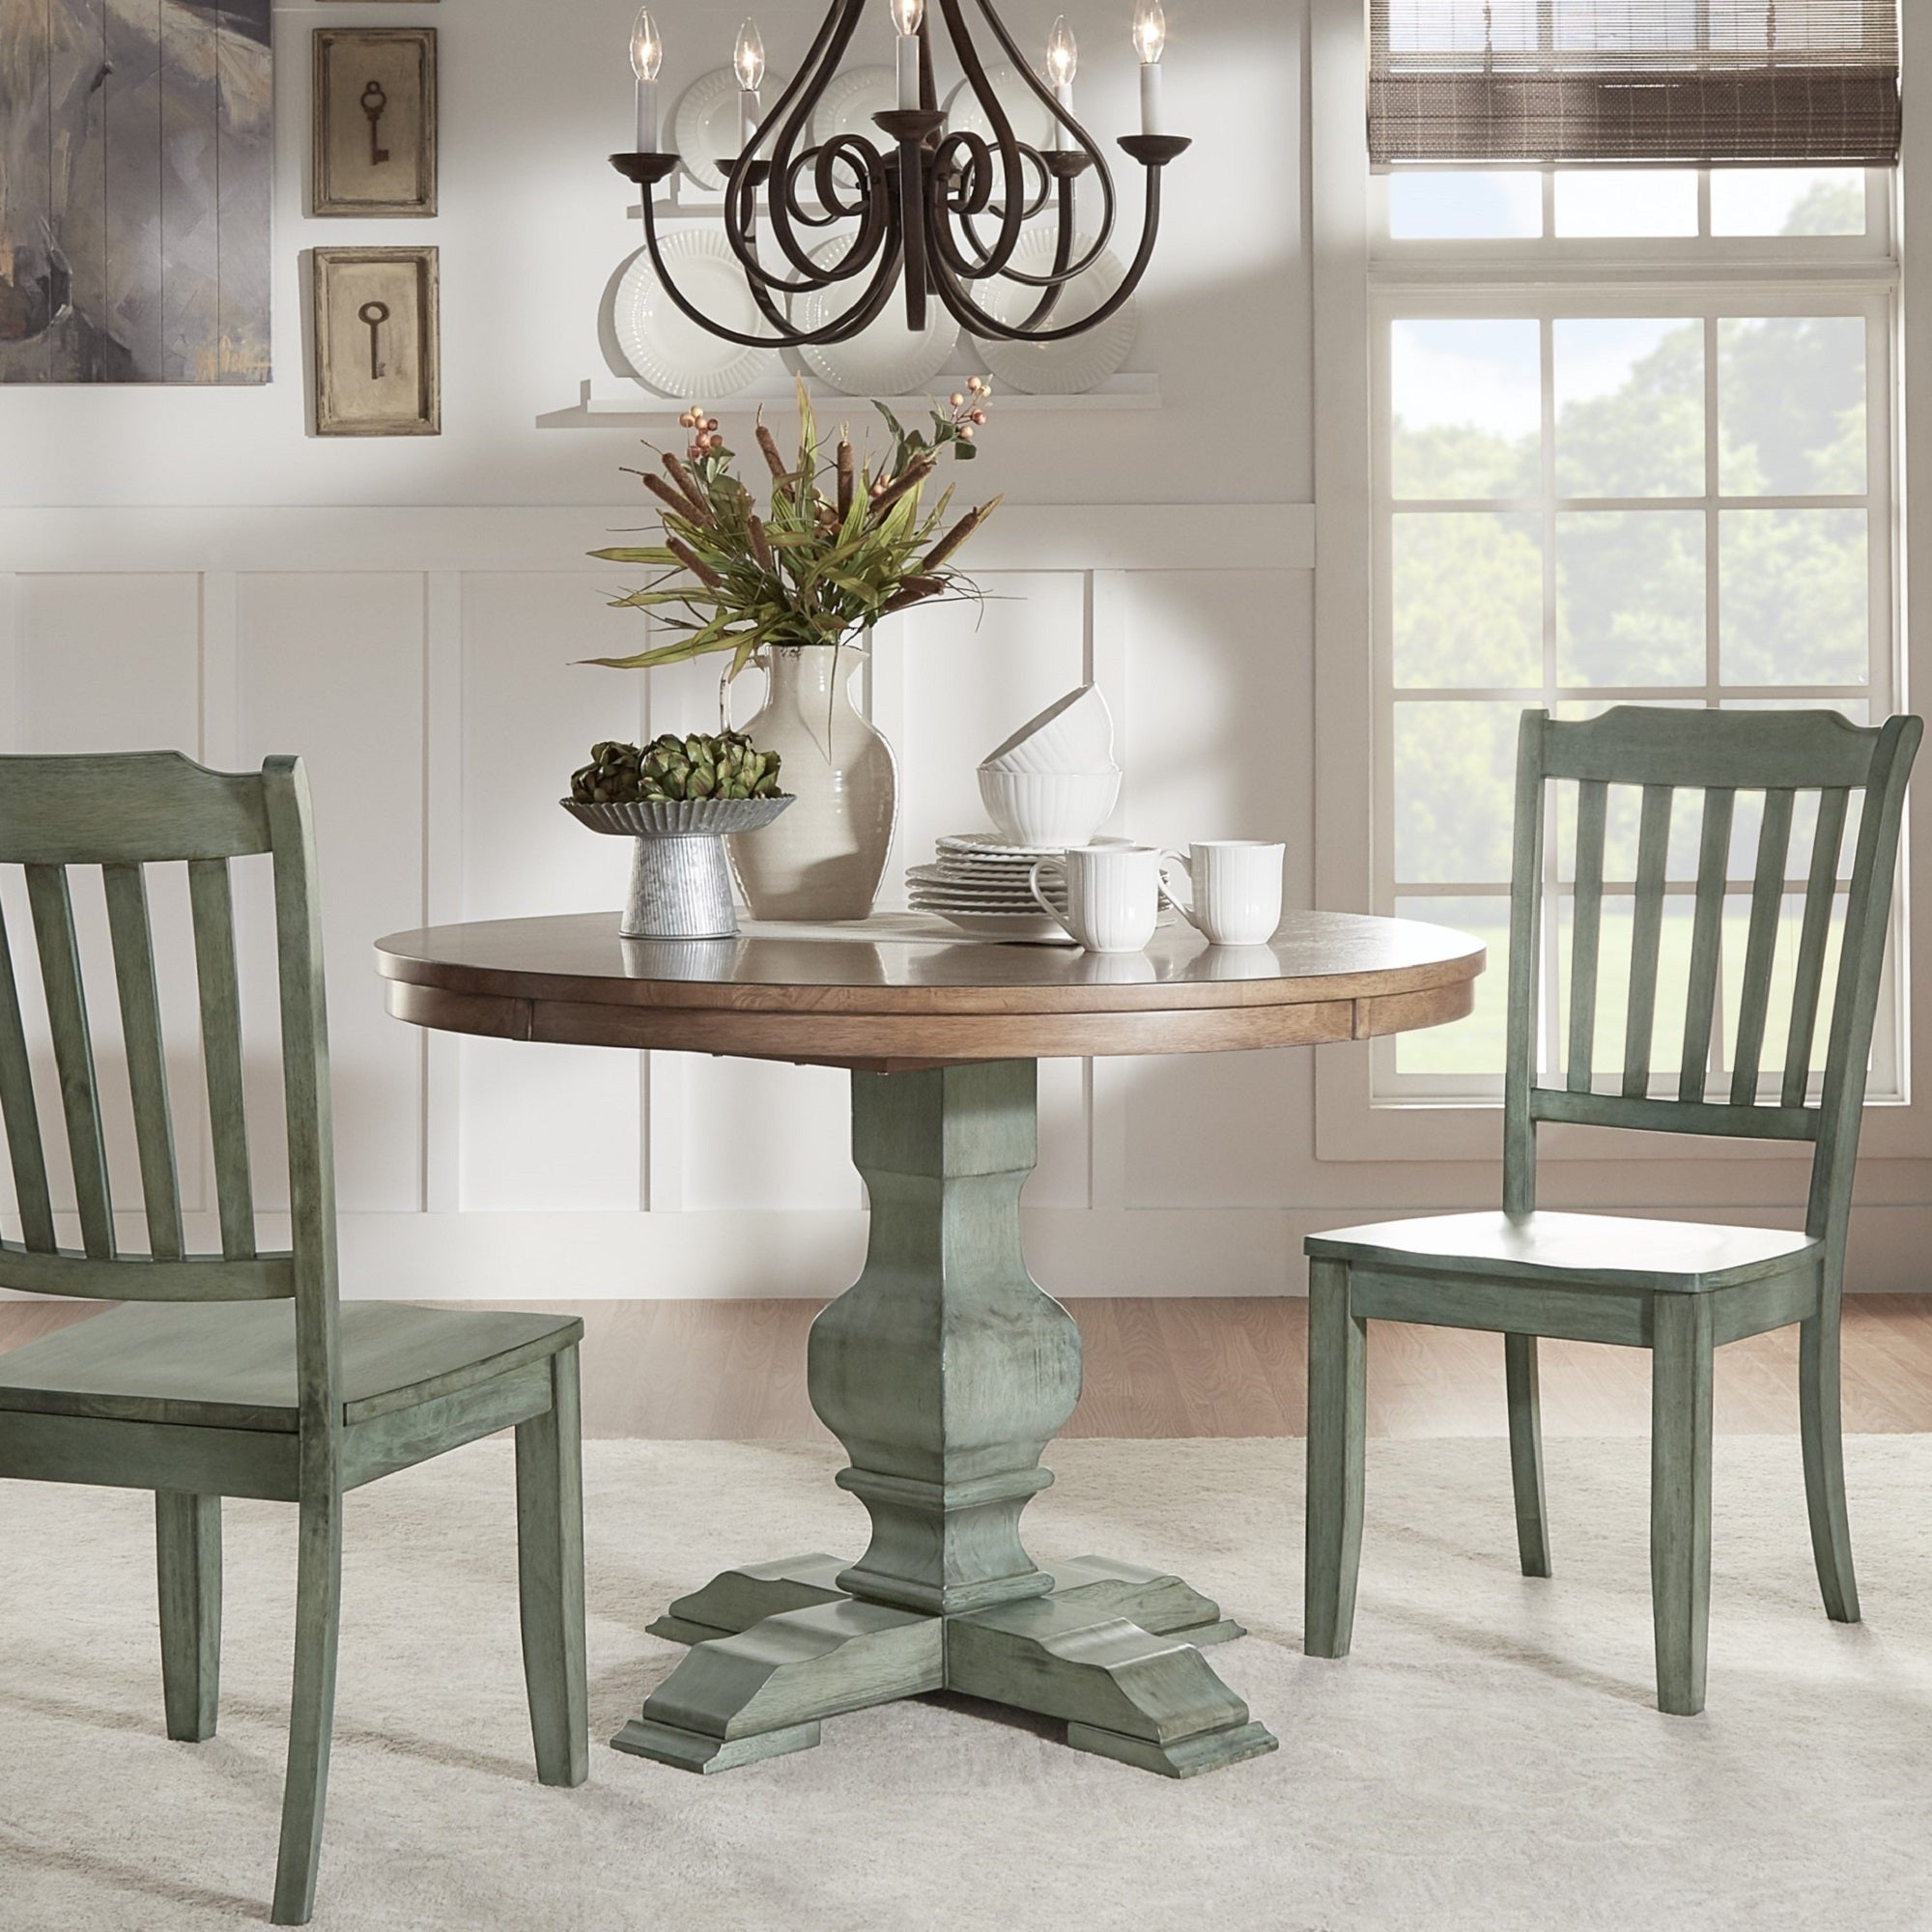 Eleanor Two-tone Round Solid Wood Top Dining Table by iNSPIRE Q Classic -  Free